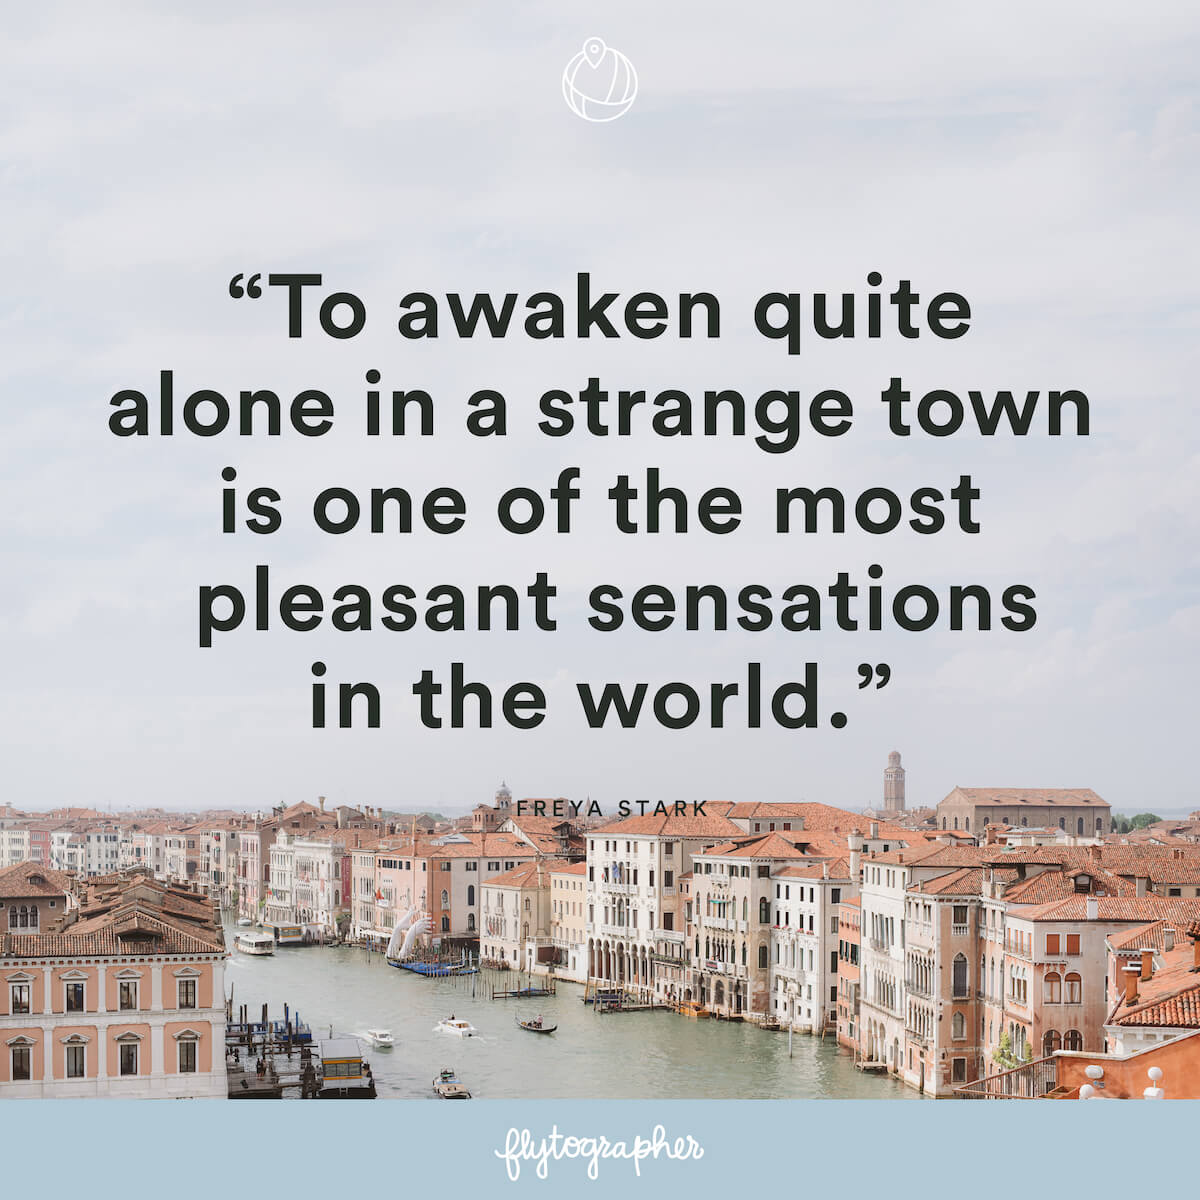 "Travel quote: ""To awaken quite alone in a strange town is one of the most pleasant sensations in the world."" – Freya Stark"